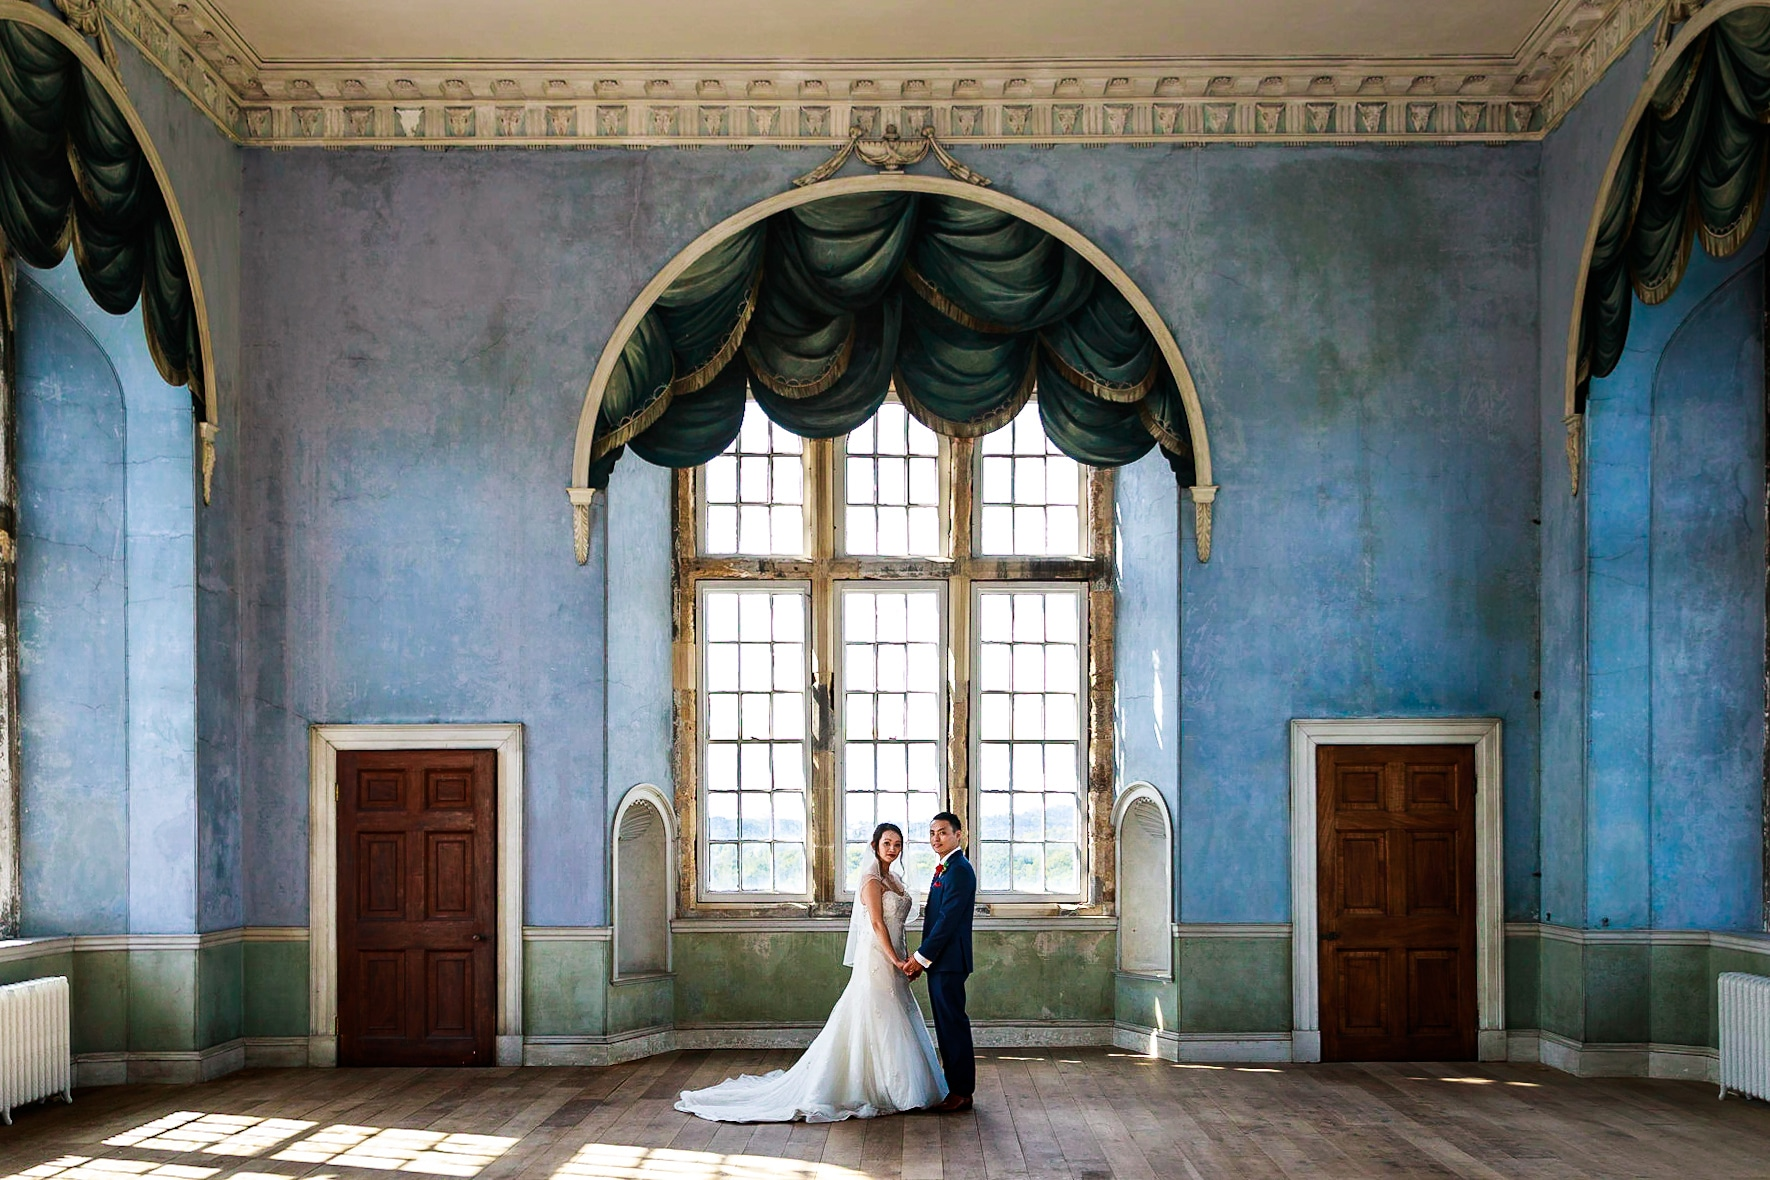 Exclusive use of Wollaton Hall for this amazing Chinese wedding - The Prospect Room on the top floor, often out of bounds.